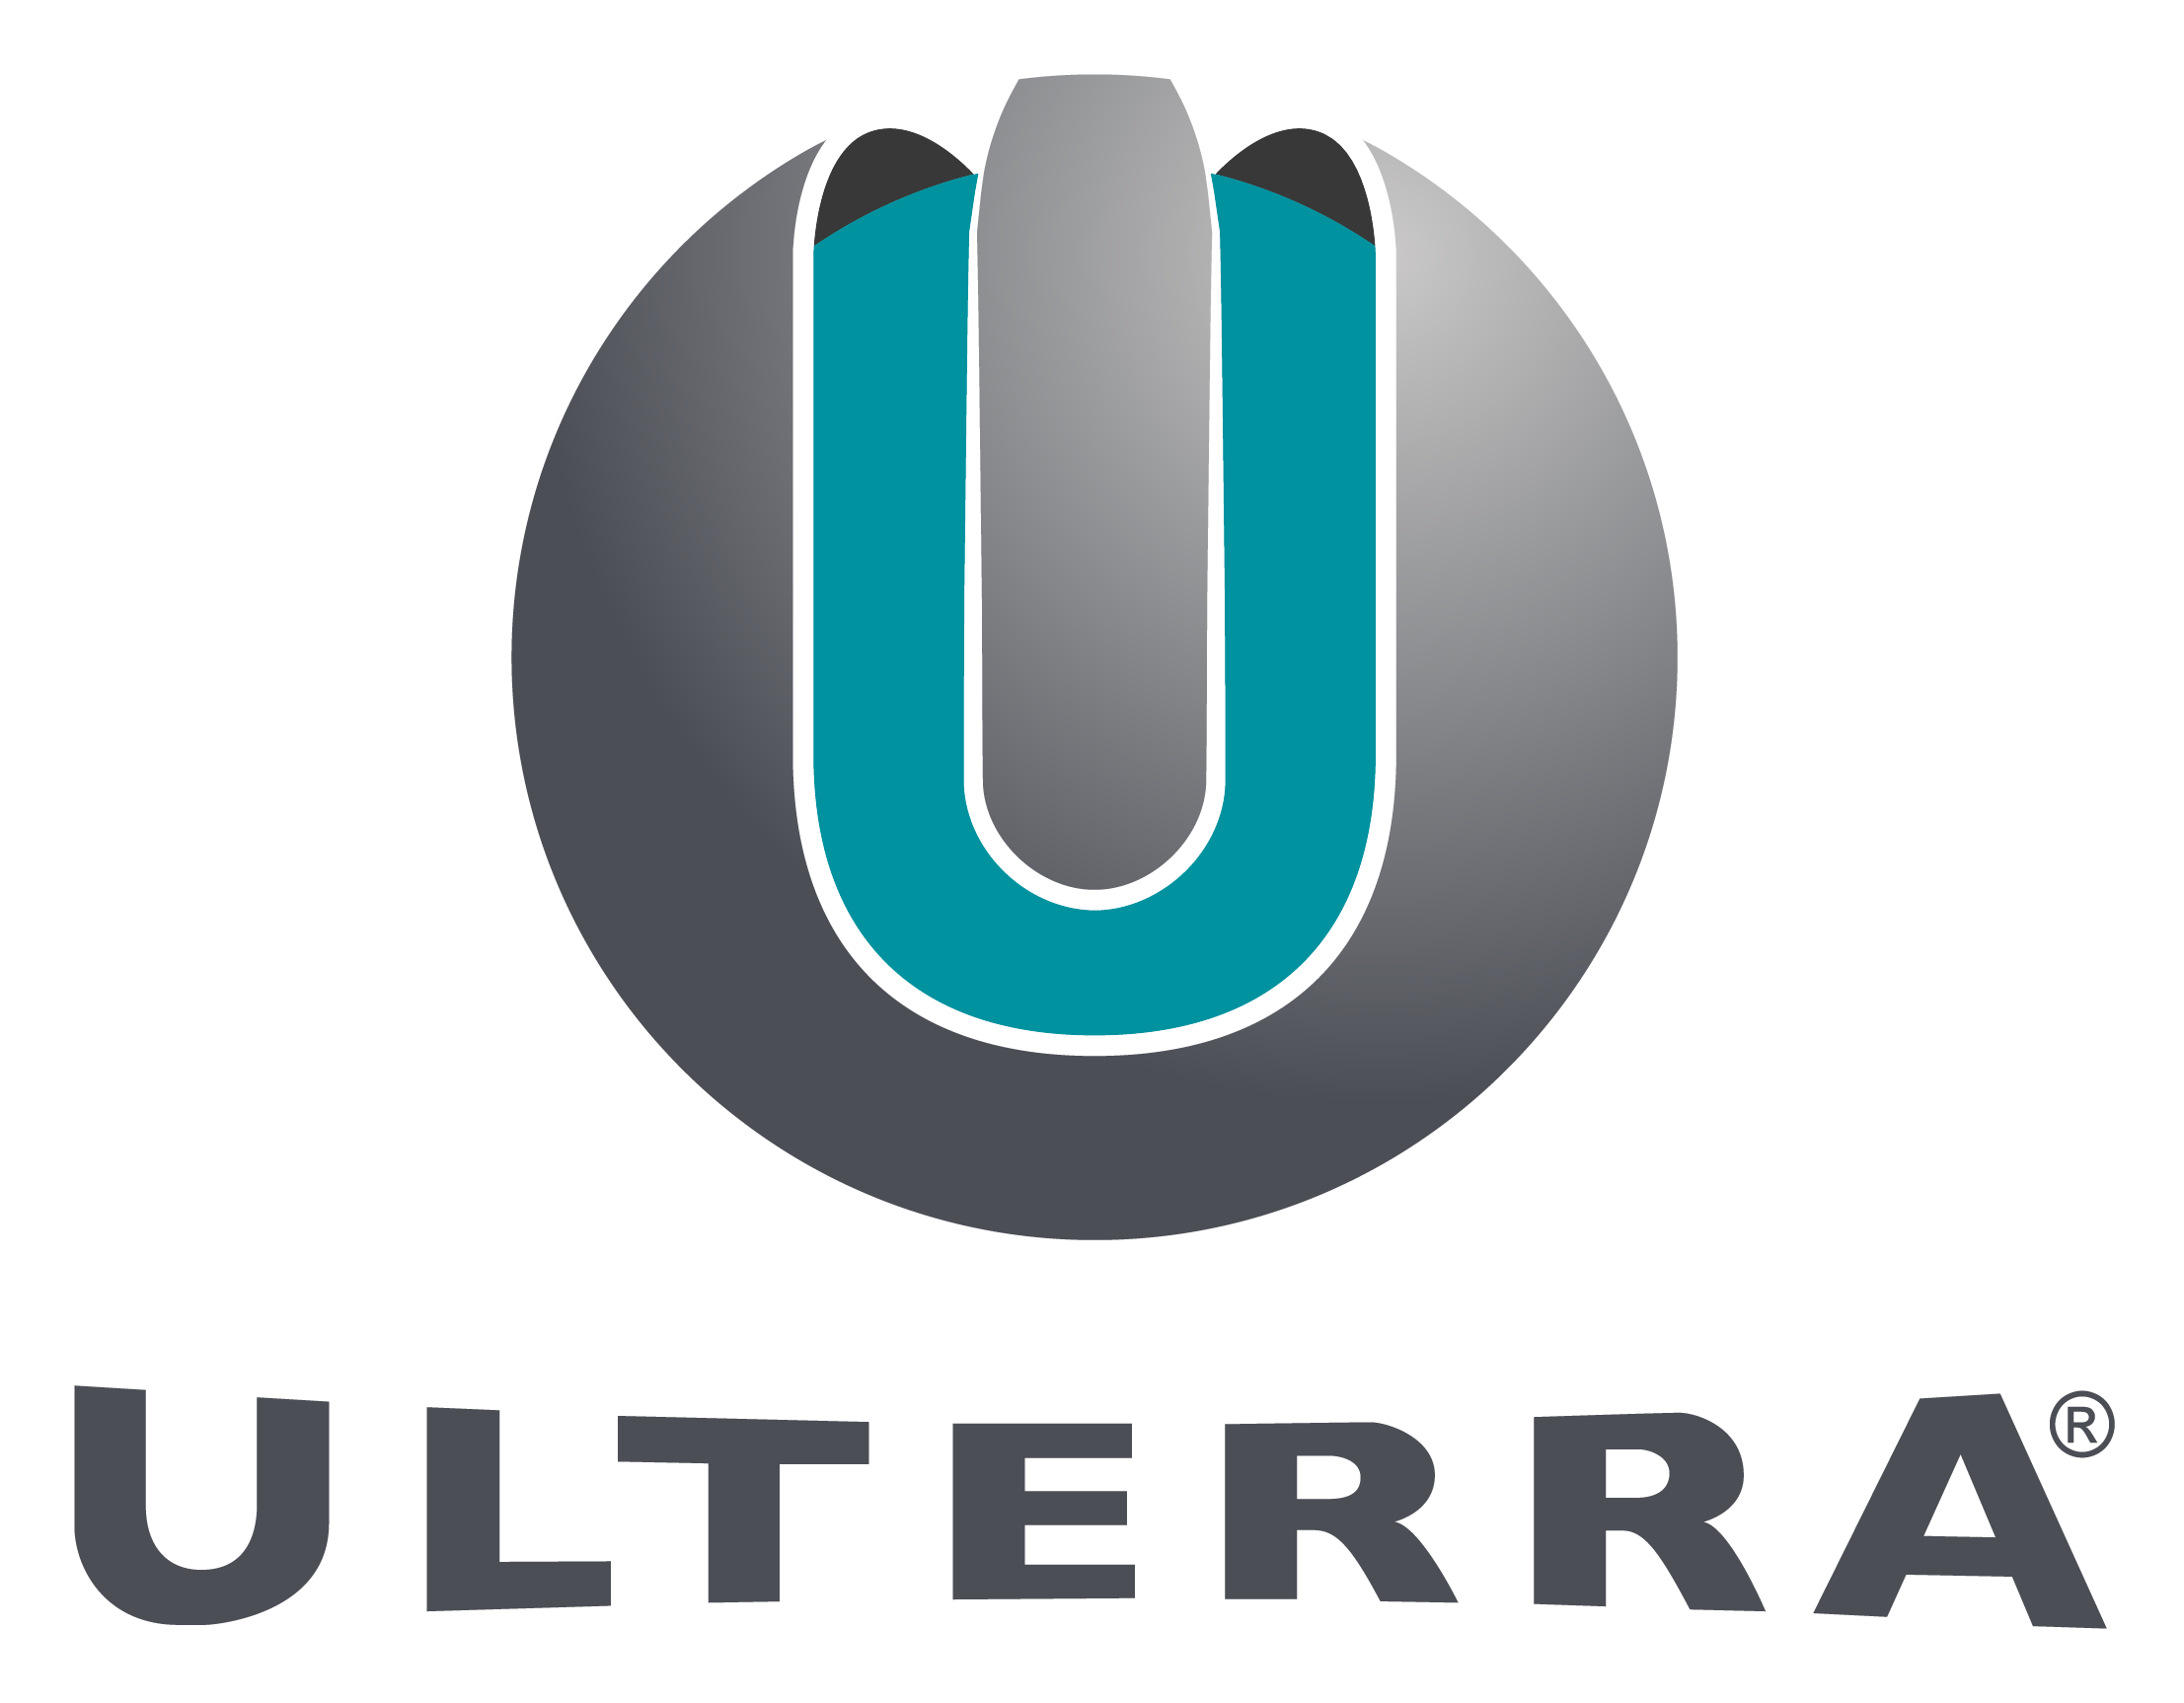 Ulterra Vertical Dark Gray (1).png